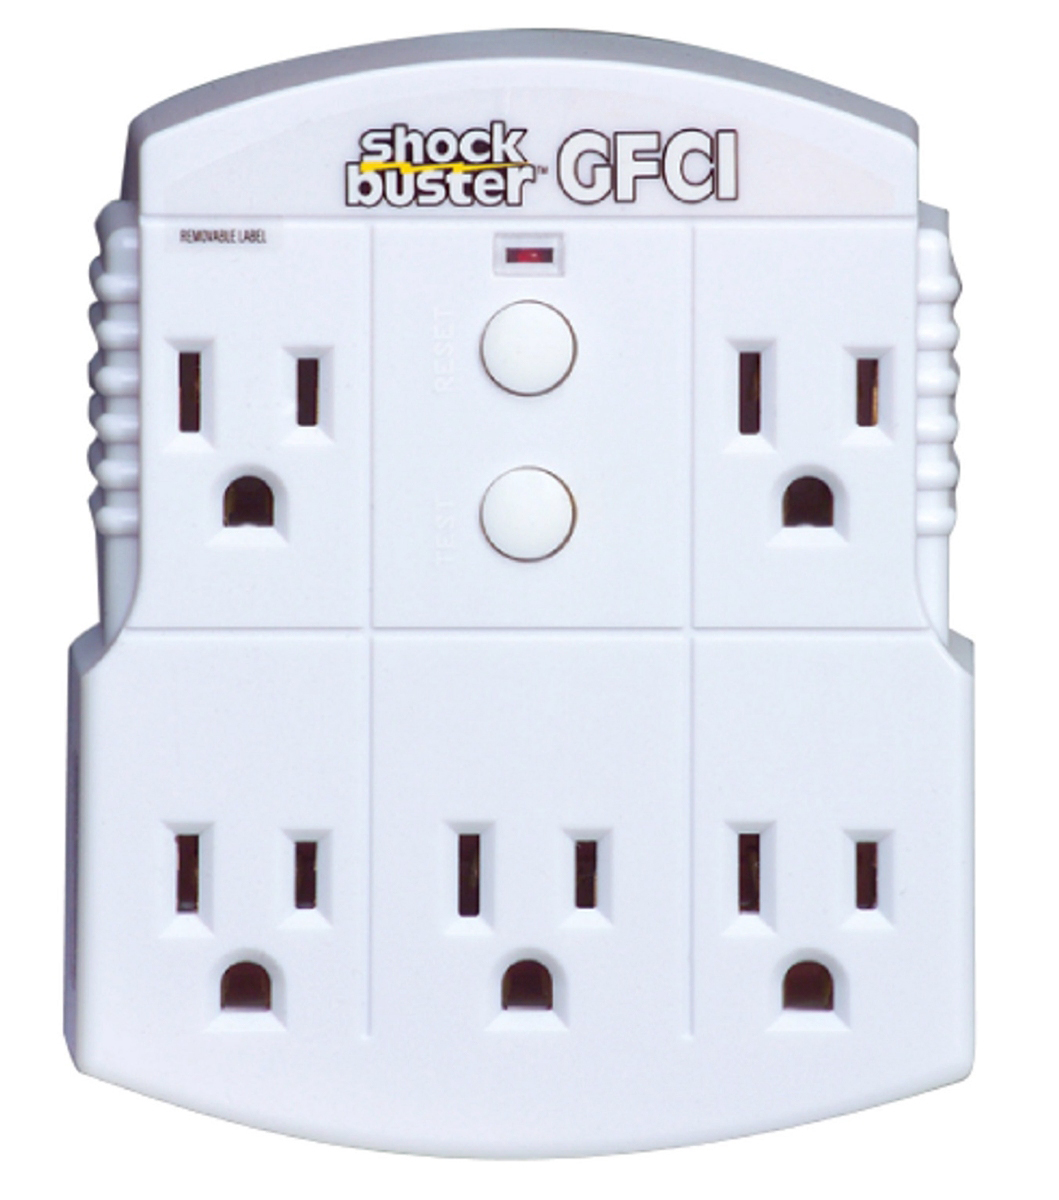 Jobsite Protection Ground Fault Circuit Interrupters Gfci Five Groundfault Interrupter Outlet Click Image To View Full Size Item P12 1201 Adapter